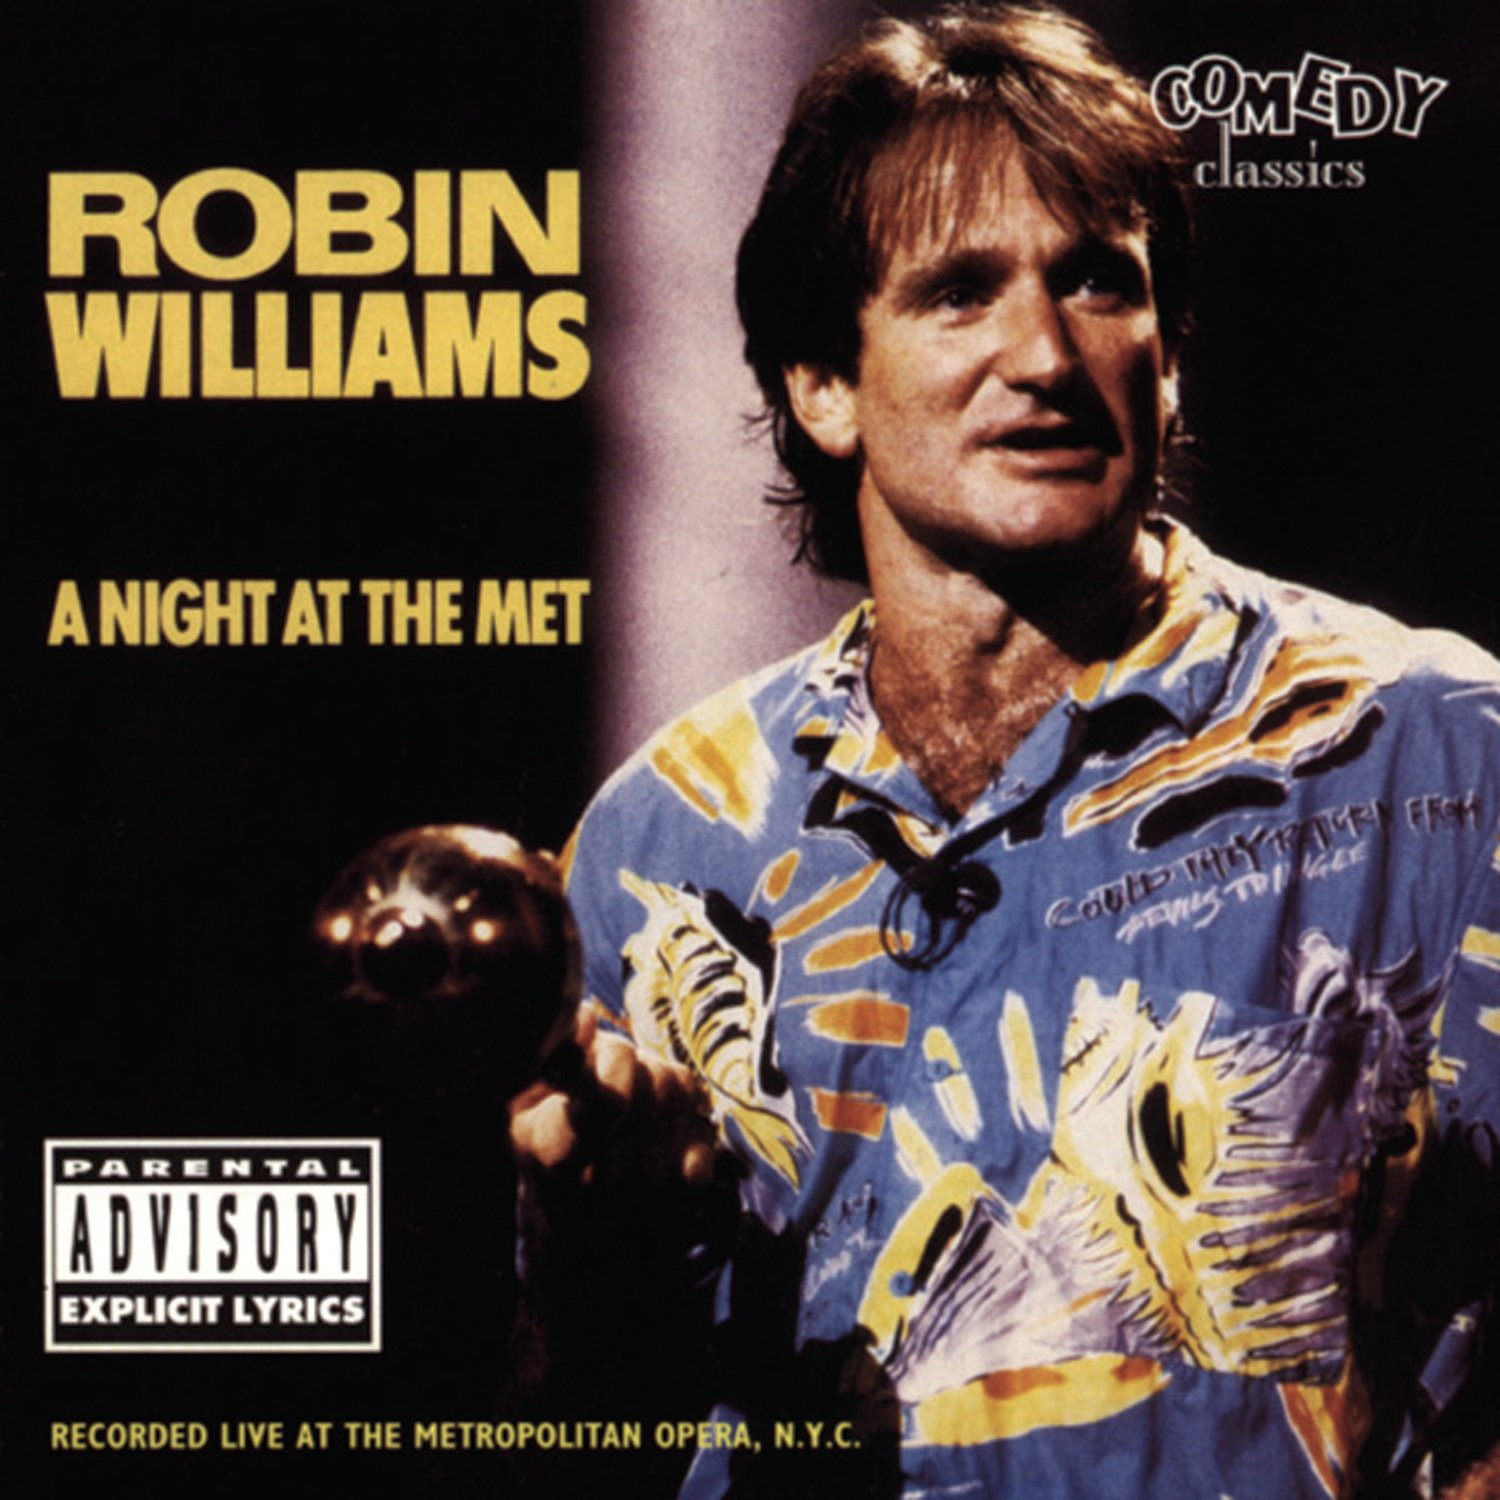 A Night At The Met [EXPLICIT LYRICS] by Sony Music Canada Inc.